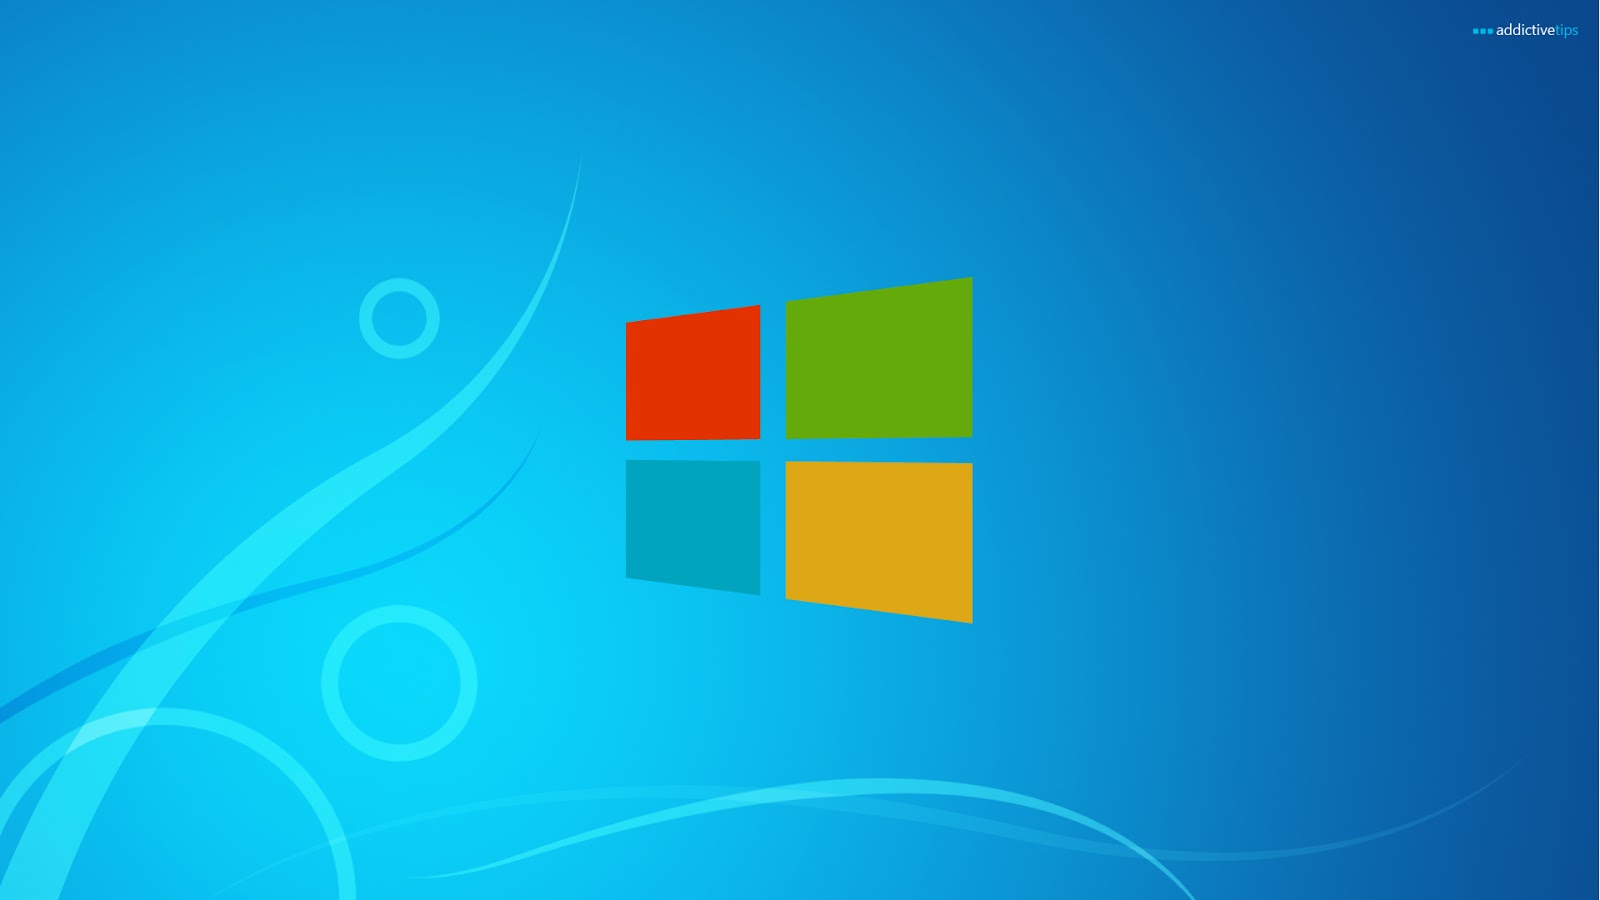 Windows 8 Desktop Background Wallpapers | All HD Wallpapers